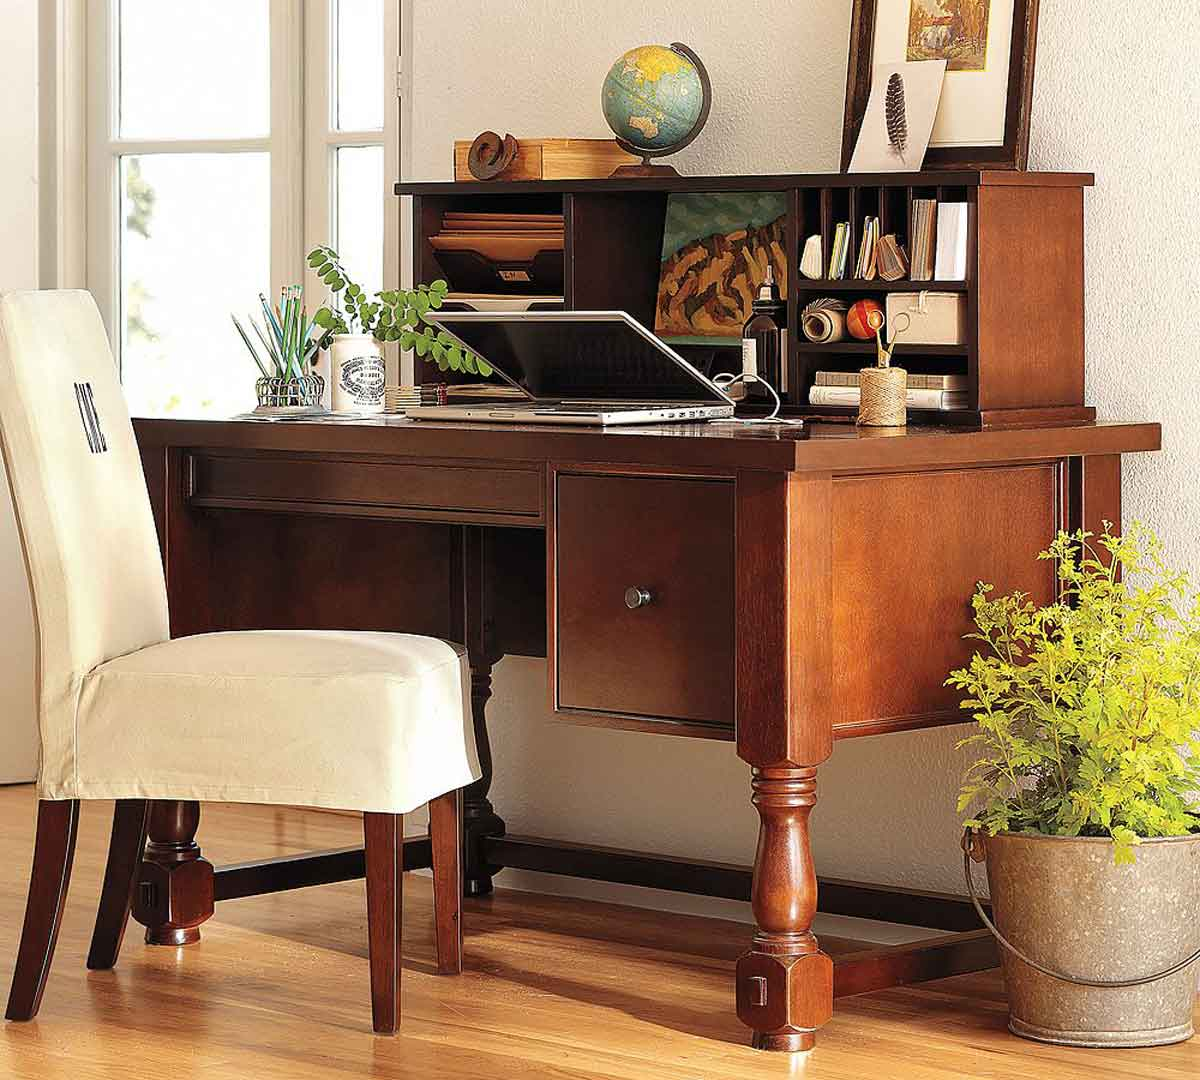 Home office design ideas Home decor furniture design